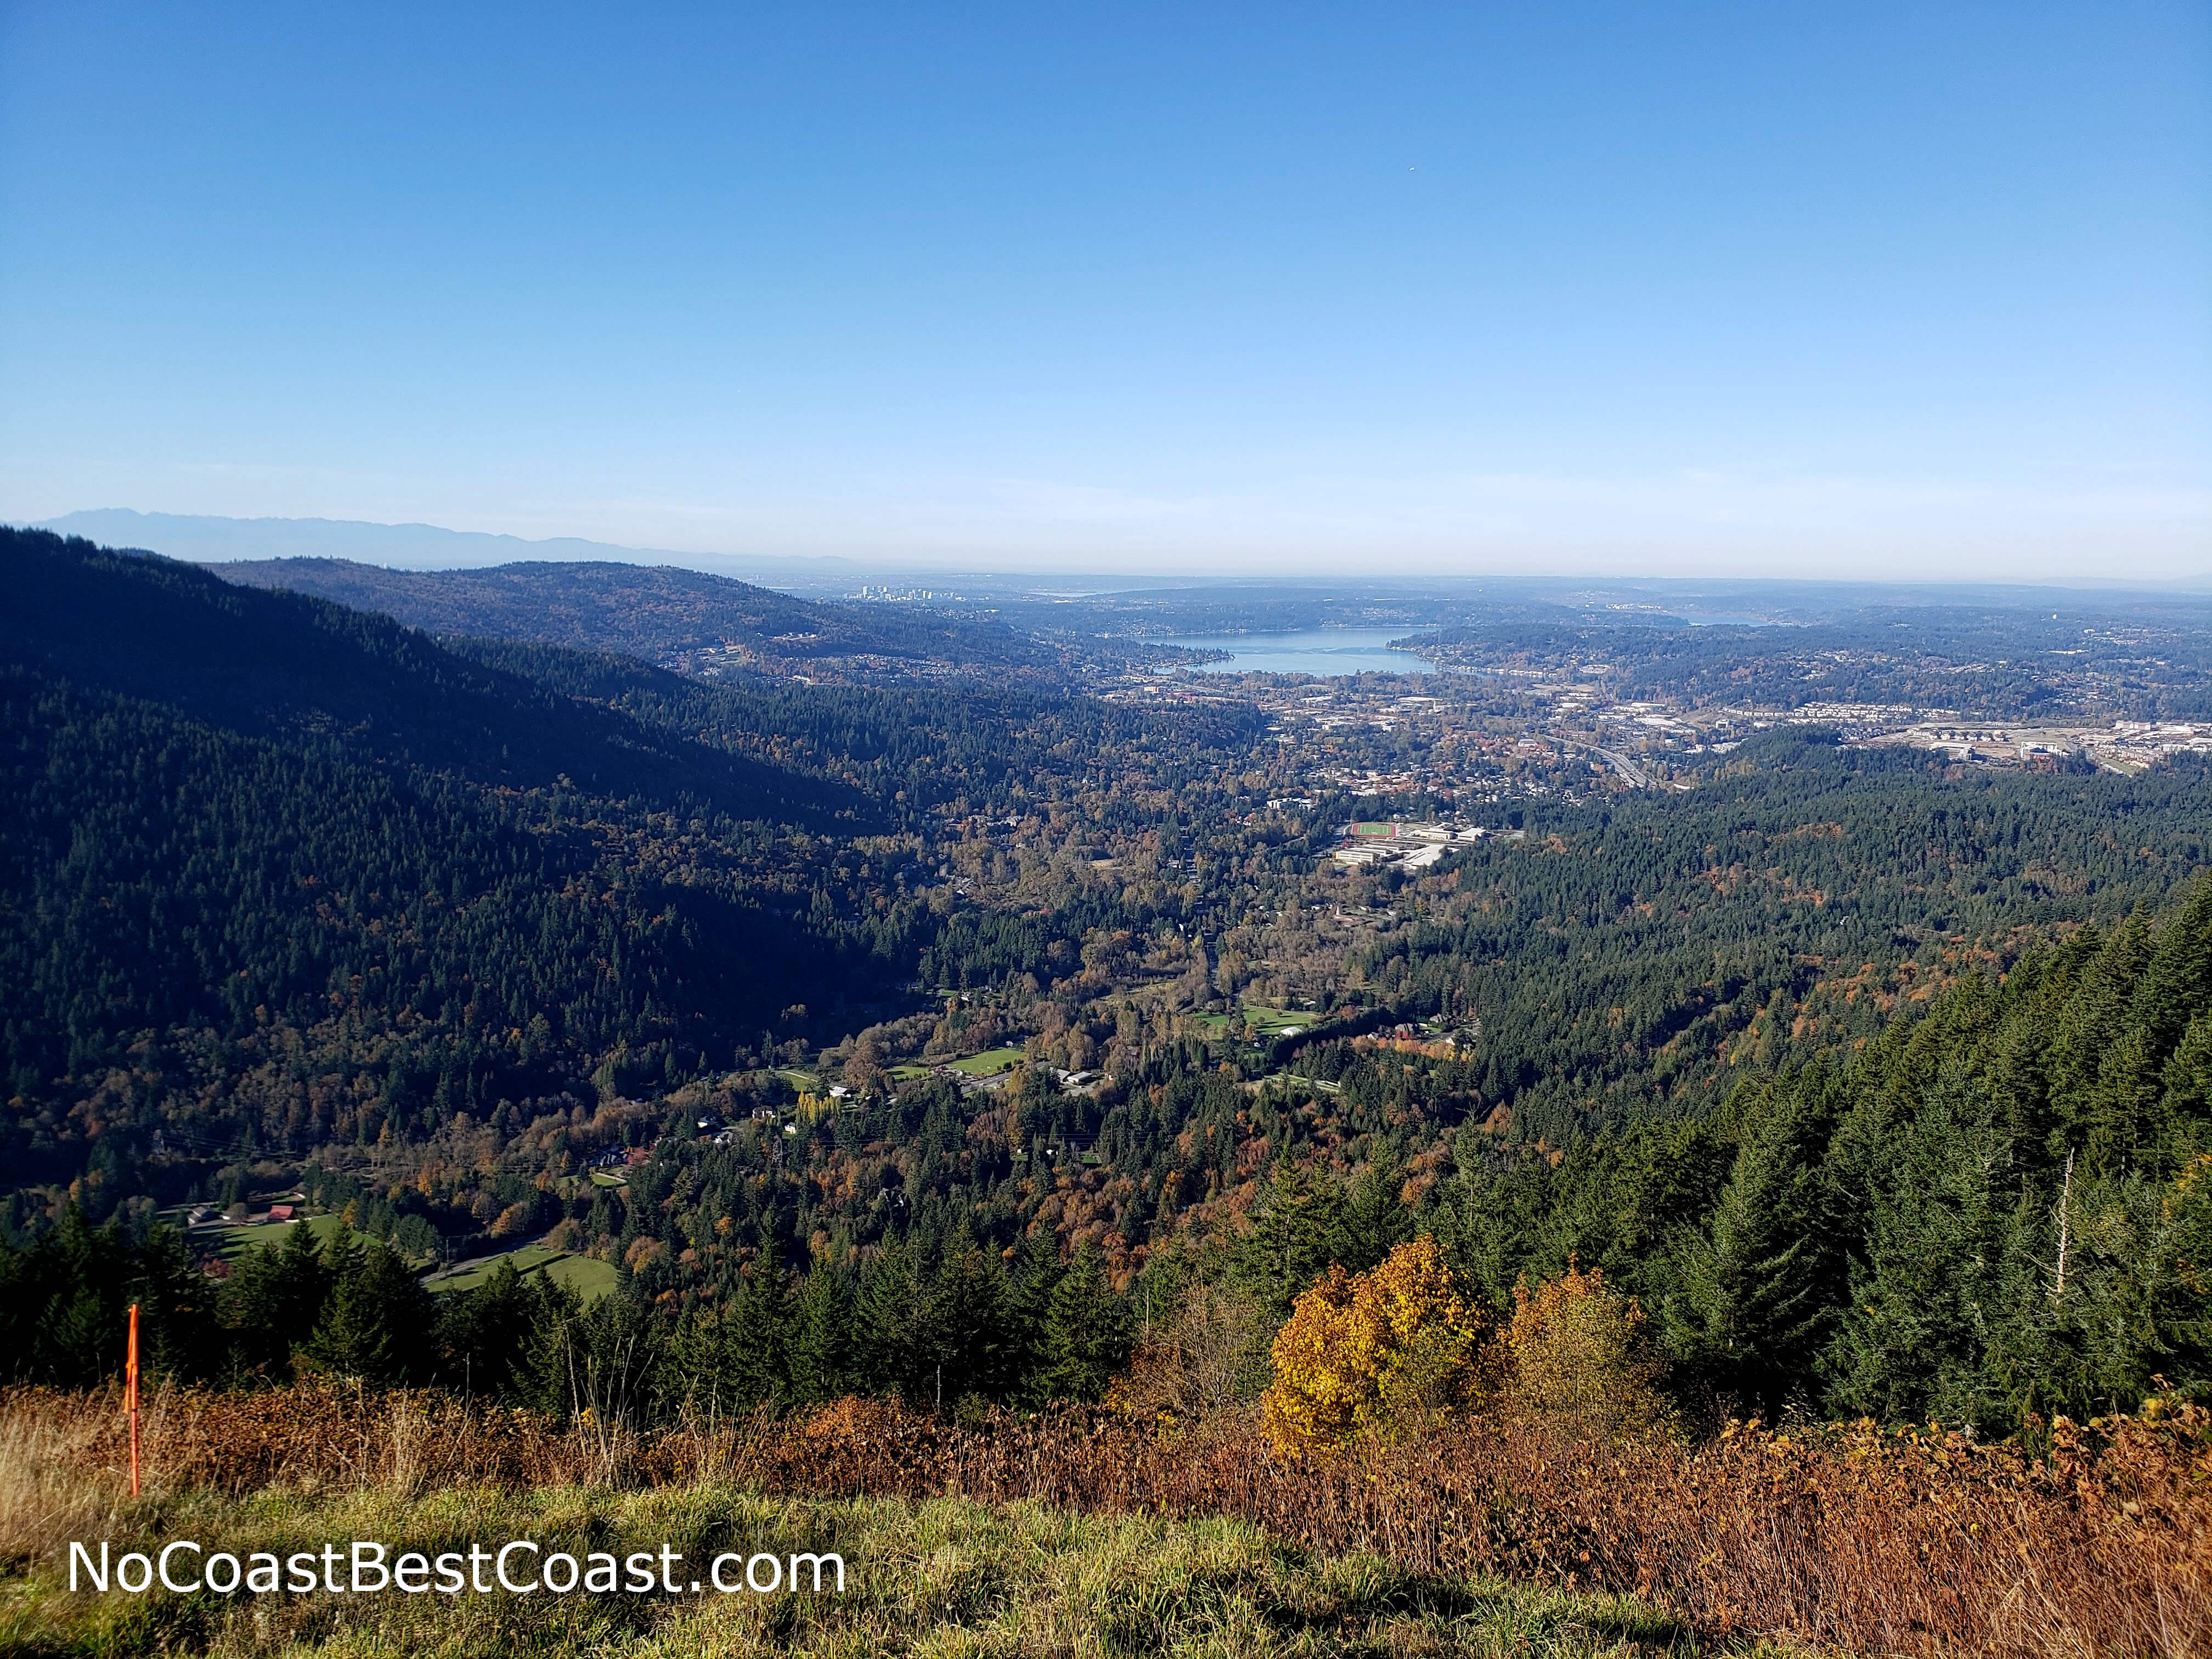 Lake Sammamish and downtown Bellevue in the distance from Poo Poo Point